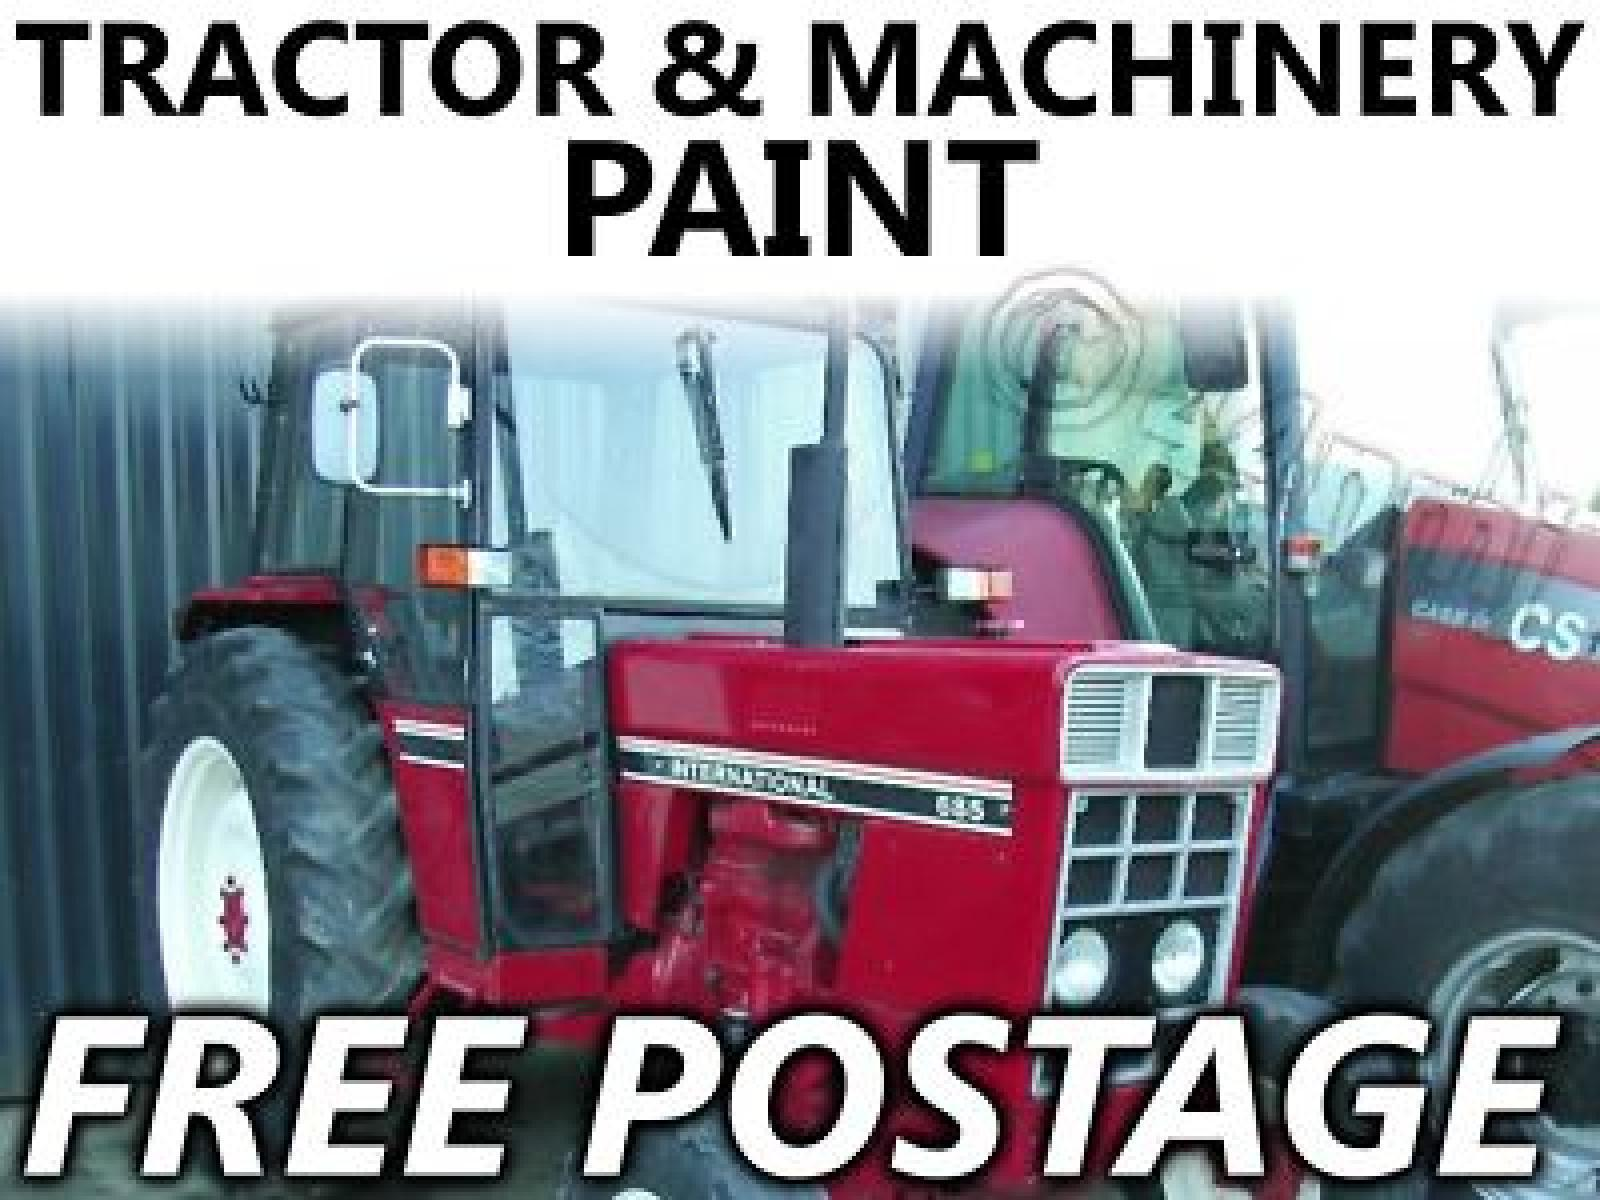 tractor paint international red 485 585 685 745 785 885 ebay rh ebay co uk Chinese Tractors Tractor Owners Manuals